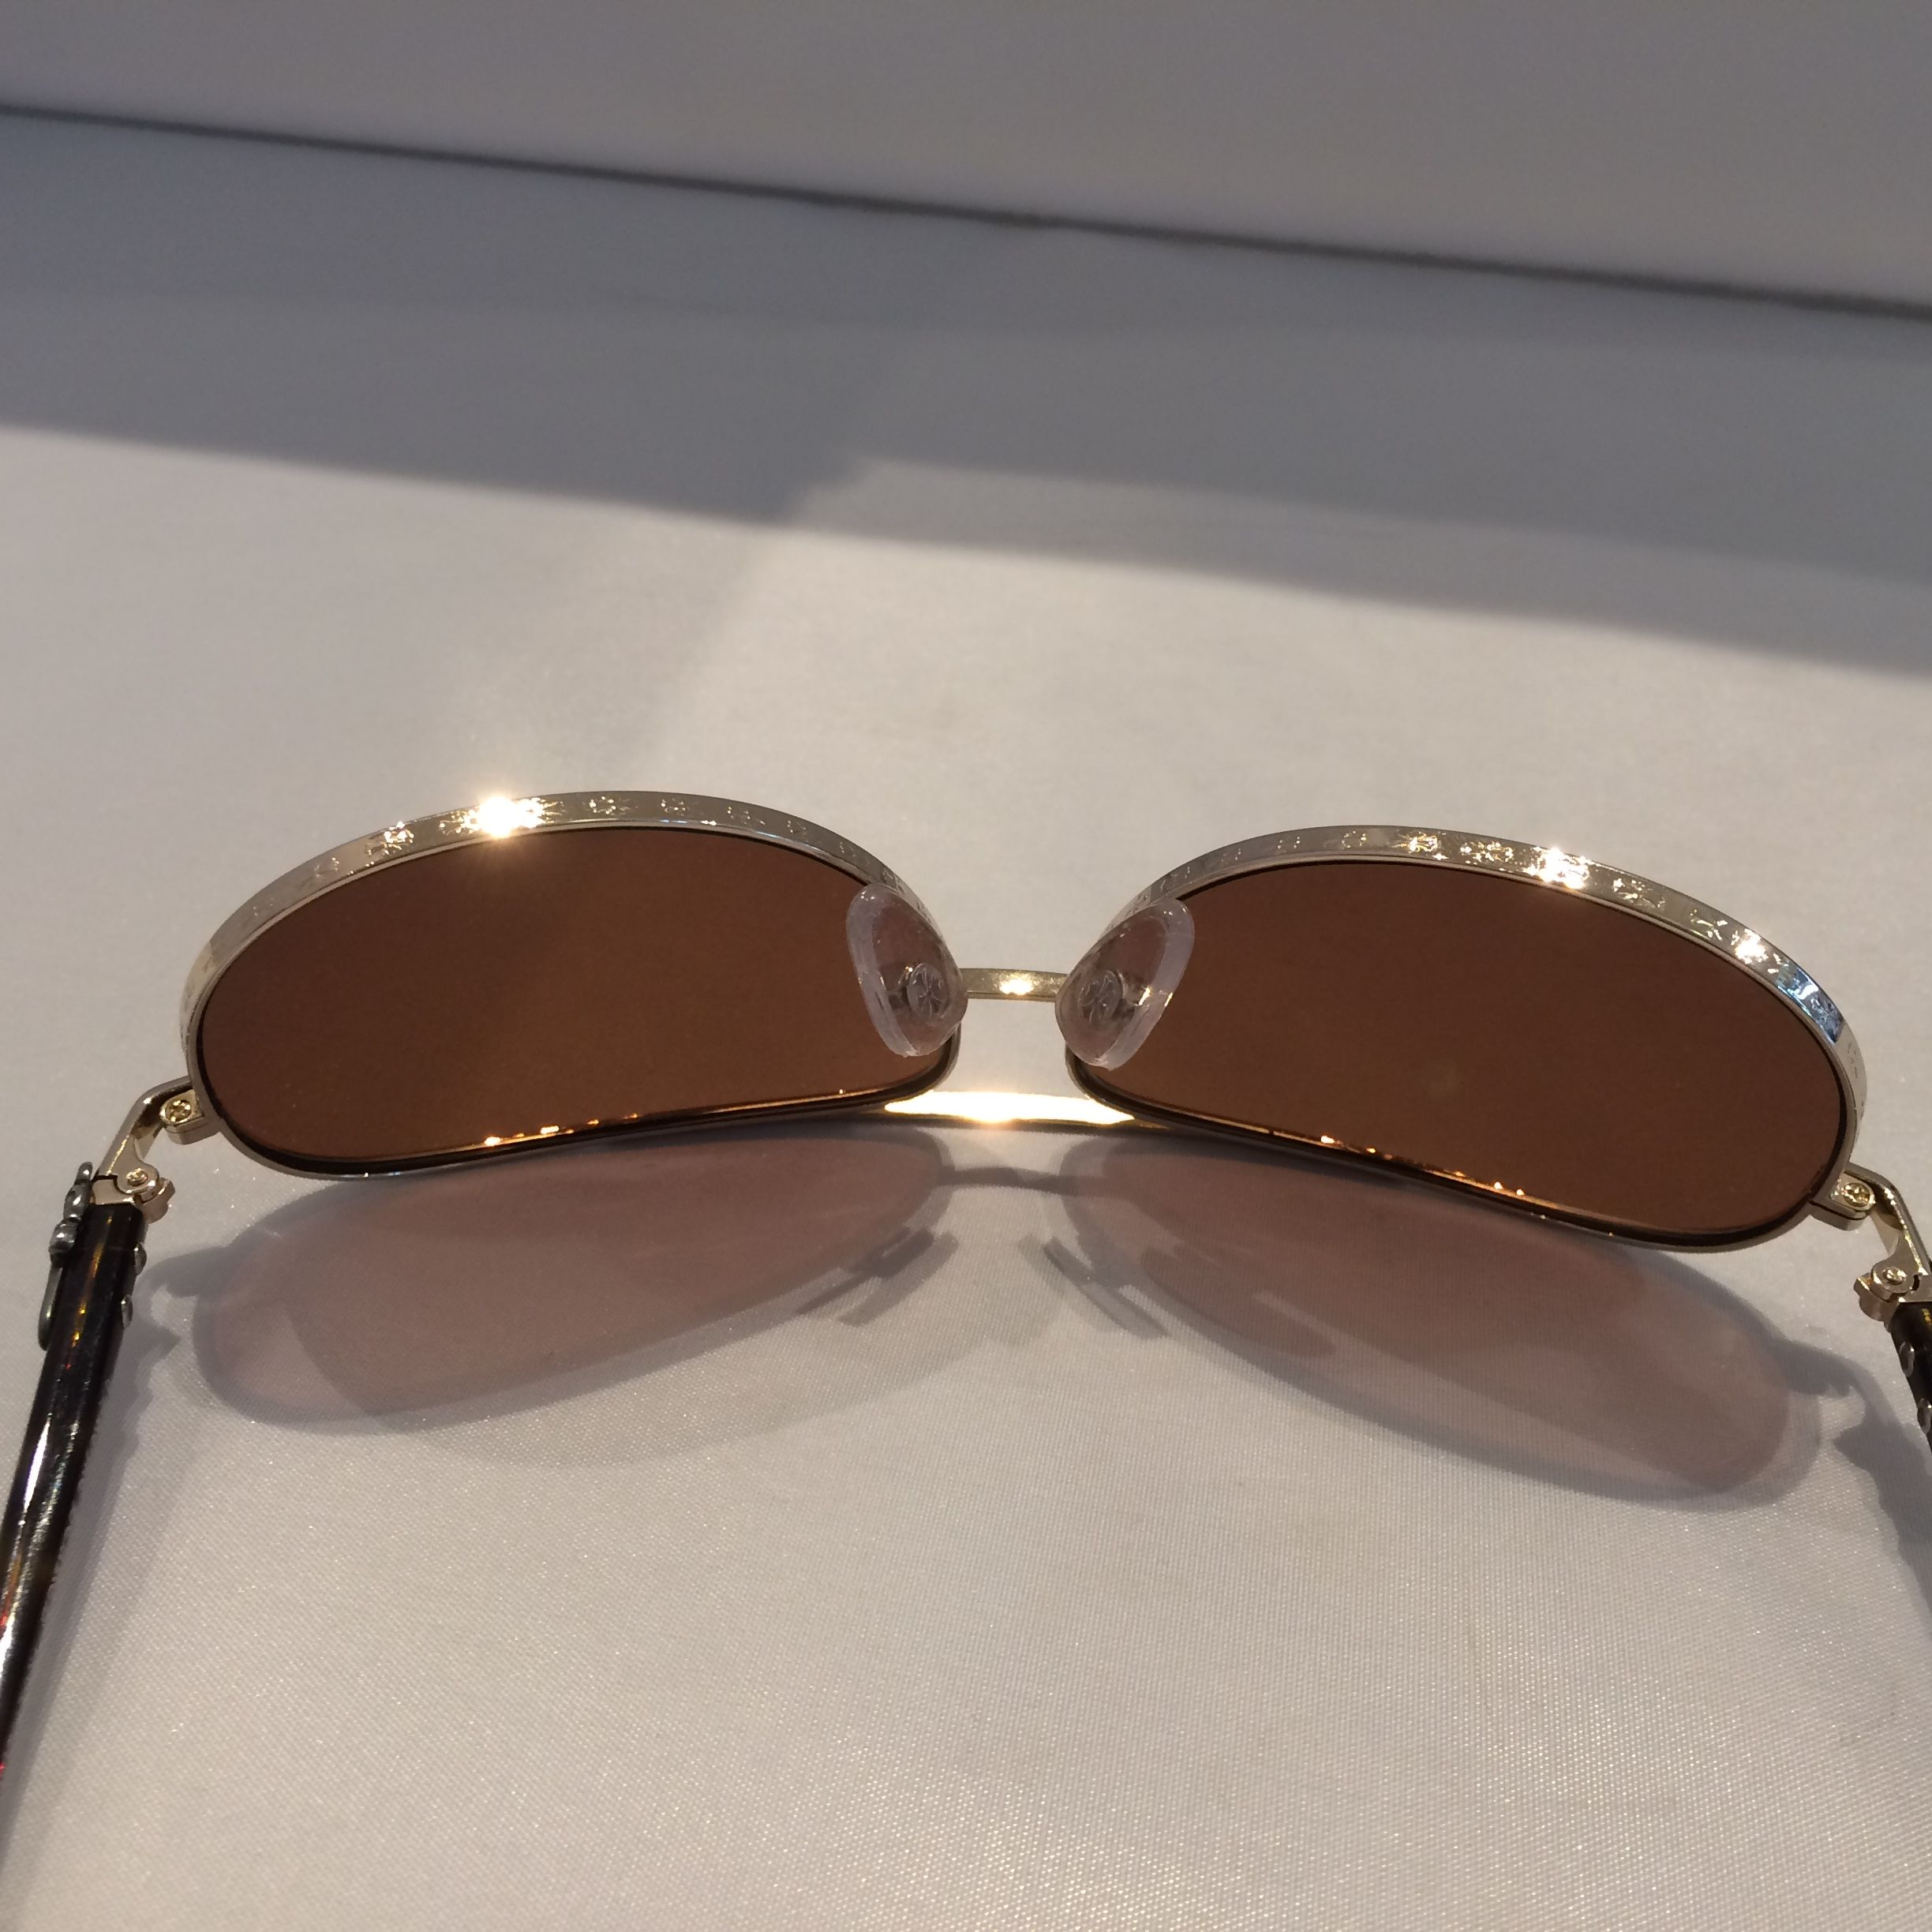 0f91f7d532fe Chrome Hearts Diamond Sunglasses. 22. 12345678